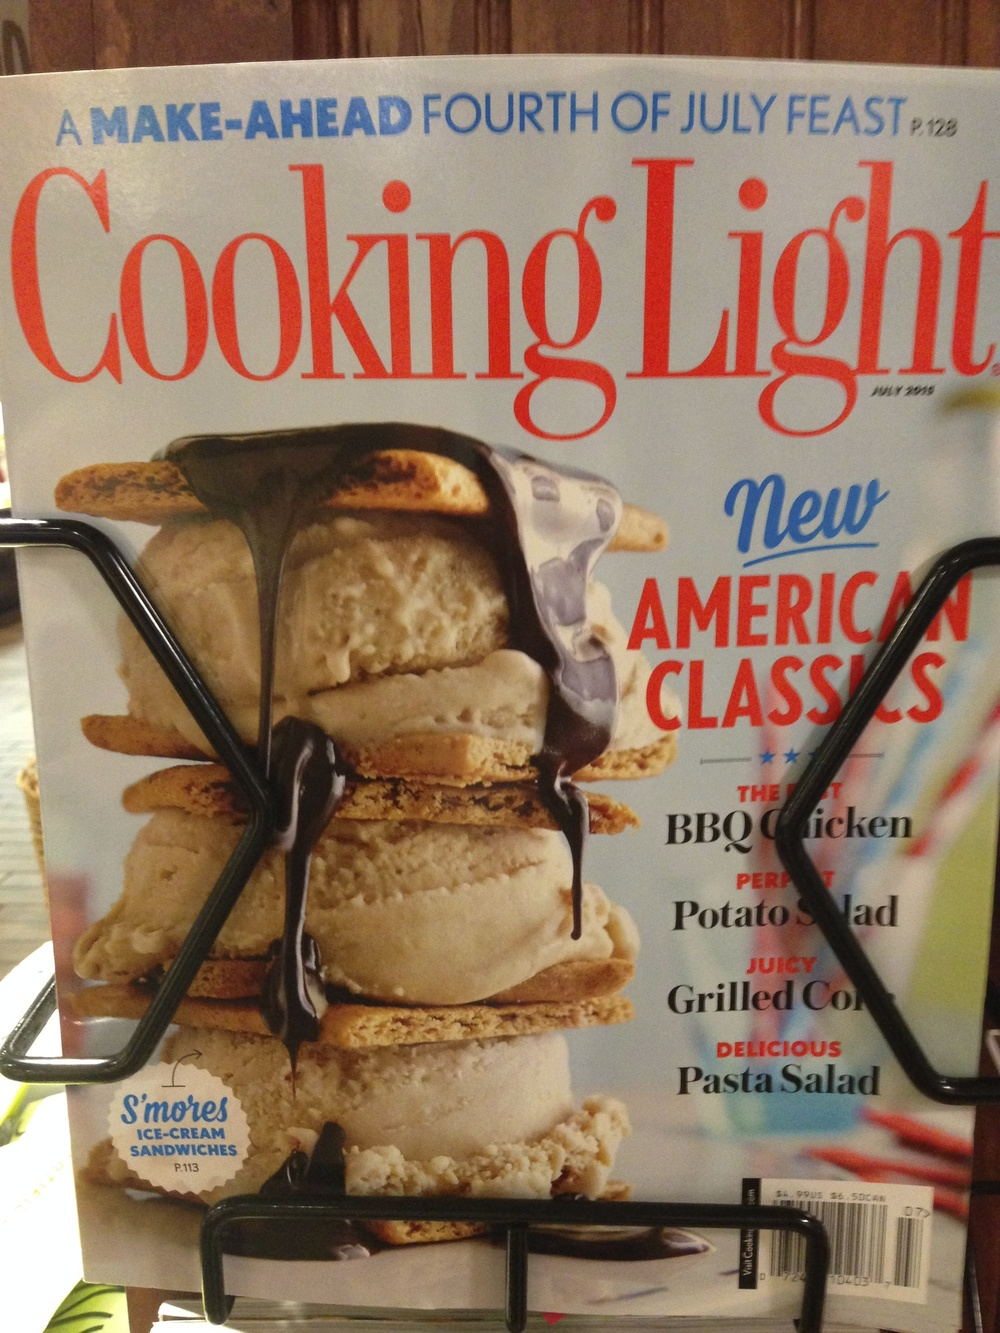 """Cooking light"" should mean eating natural foods -- fruit and nuts as a dessert, for example."